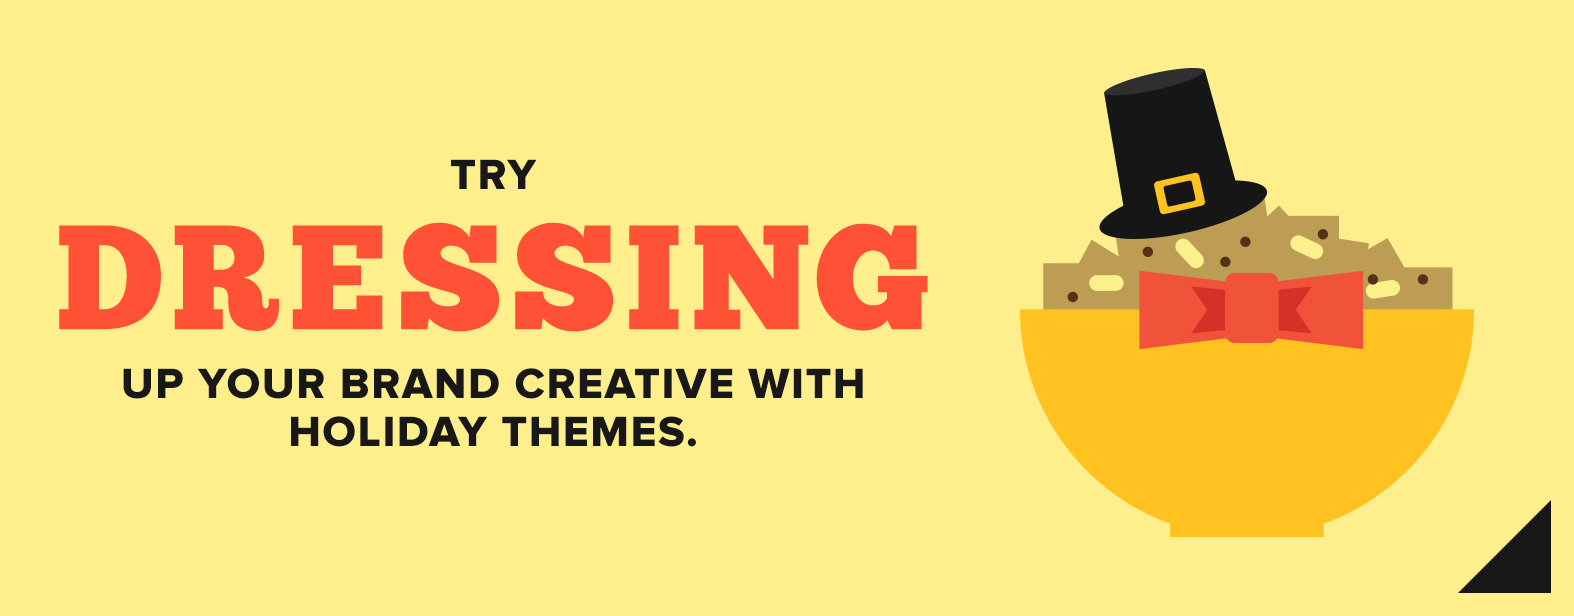 Try dressing up your brand creative.